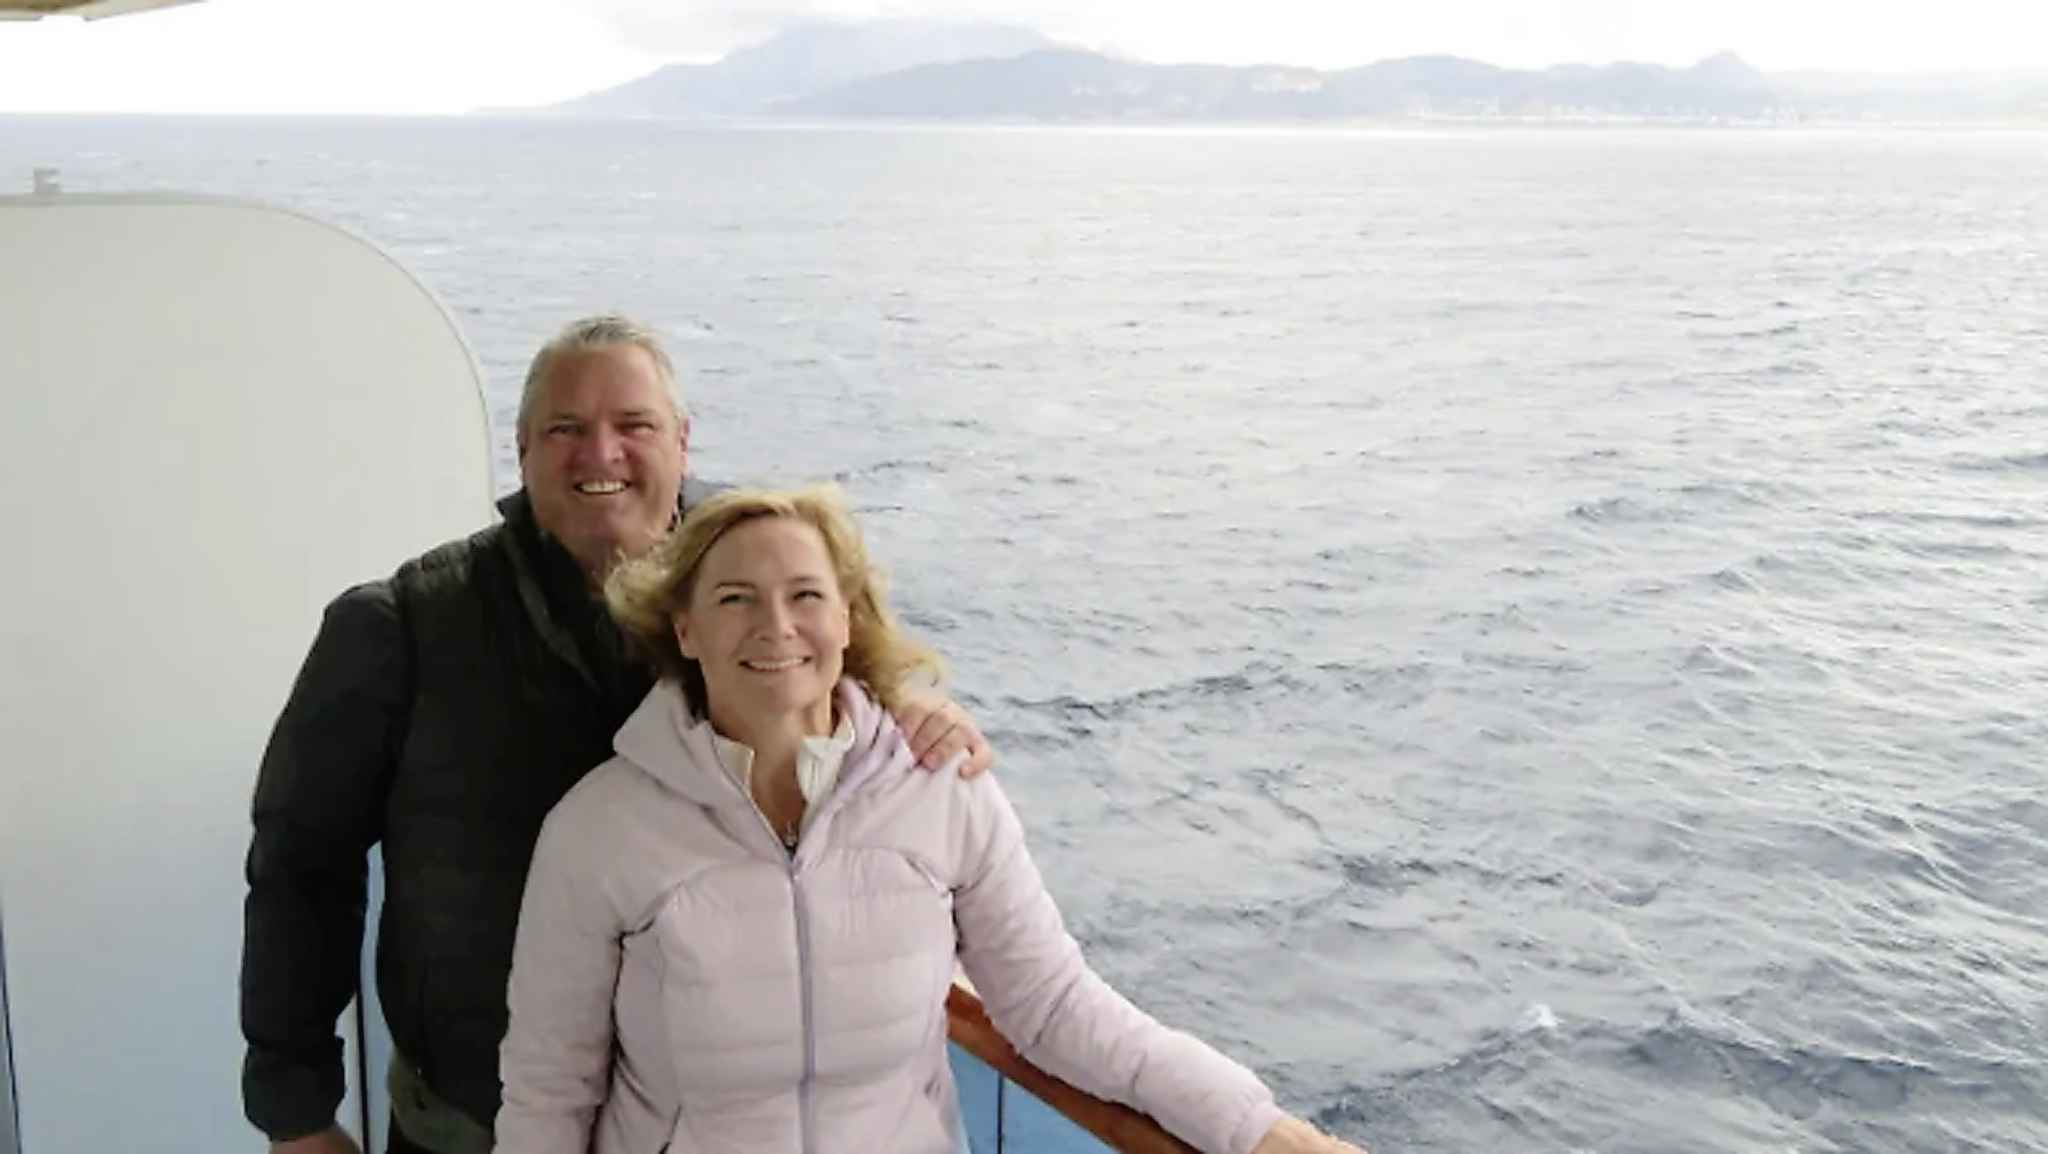 Winnipeggers Al and Martha Bradbury were on a cruise ship where passengers later tested positive for COVID-19. They told CBC News they didn't experience typical symptoms of the virus. (Submitted by Martha Bradbury for CBC News)